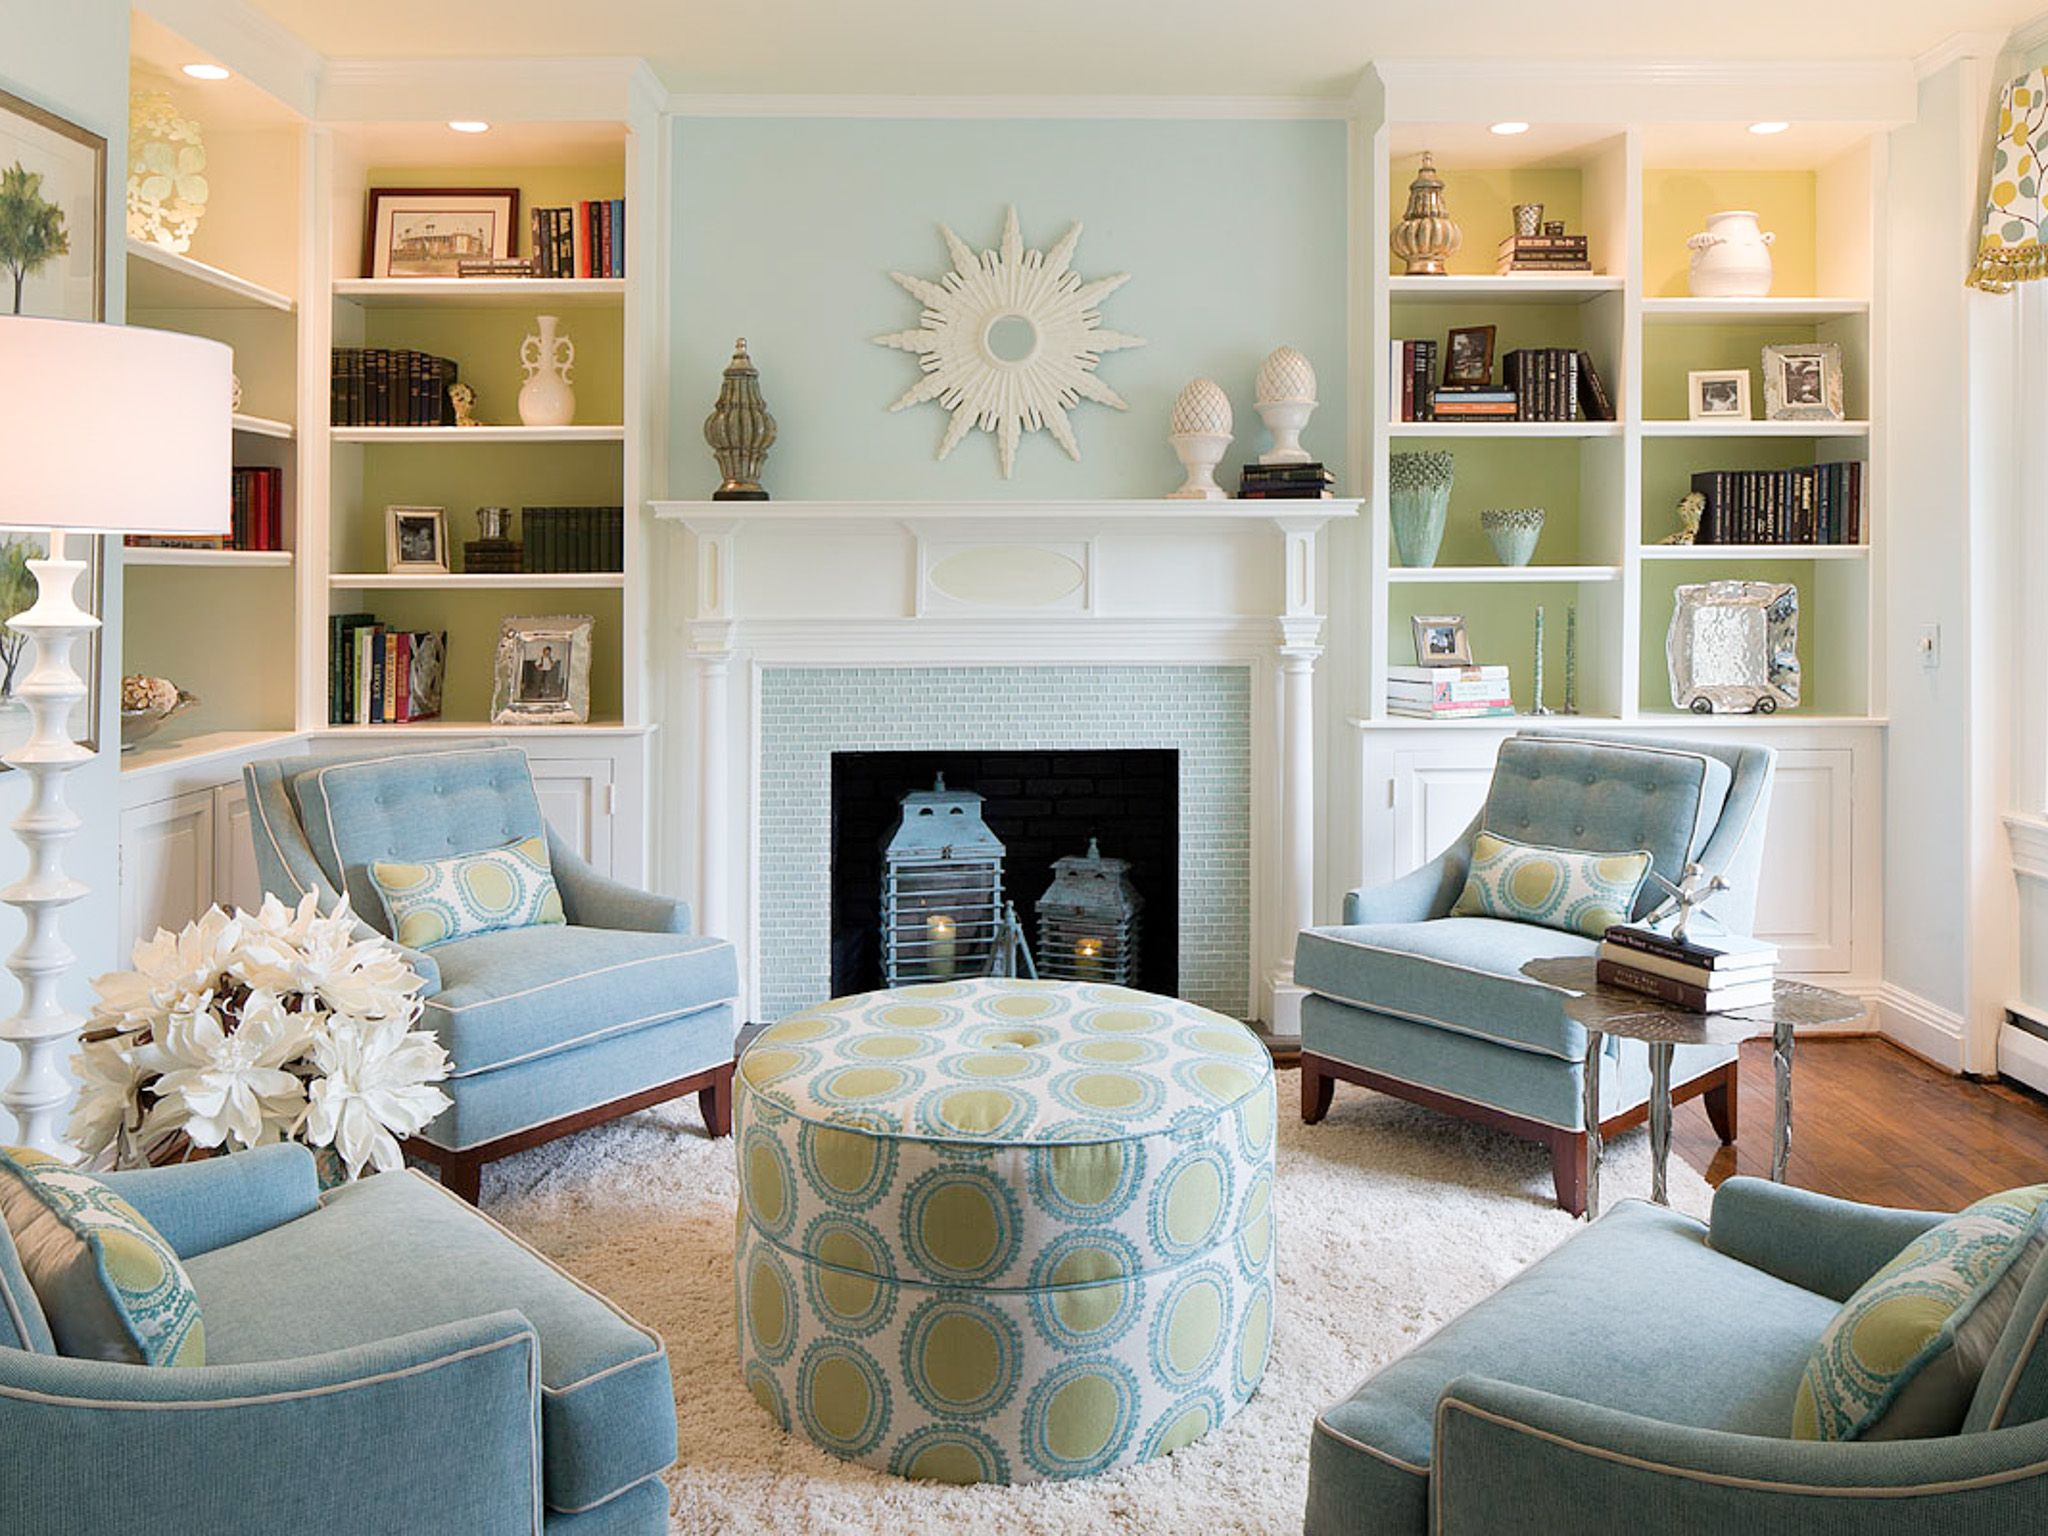 The White Mantel And Light Blue Glass Tile On The Fireplace Captivating Interior Design Ideas For Living Rooms With Fireplace Review